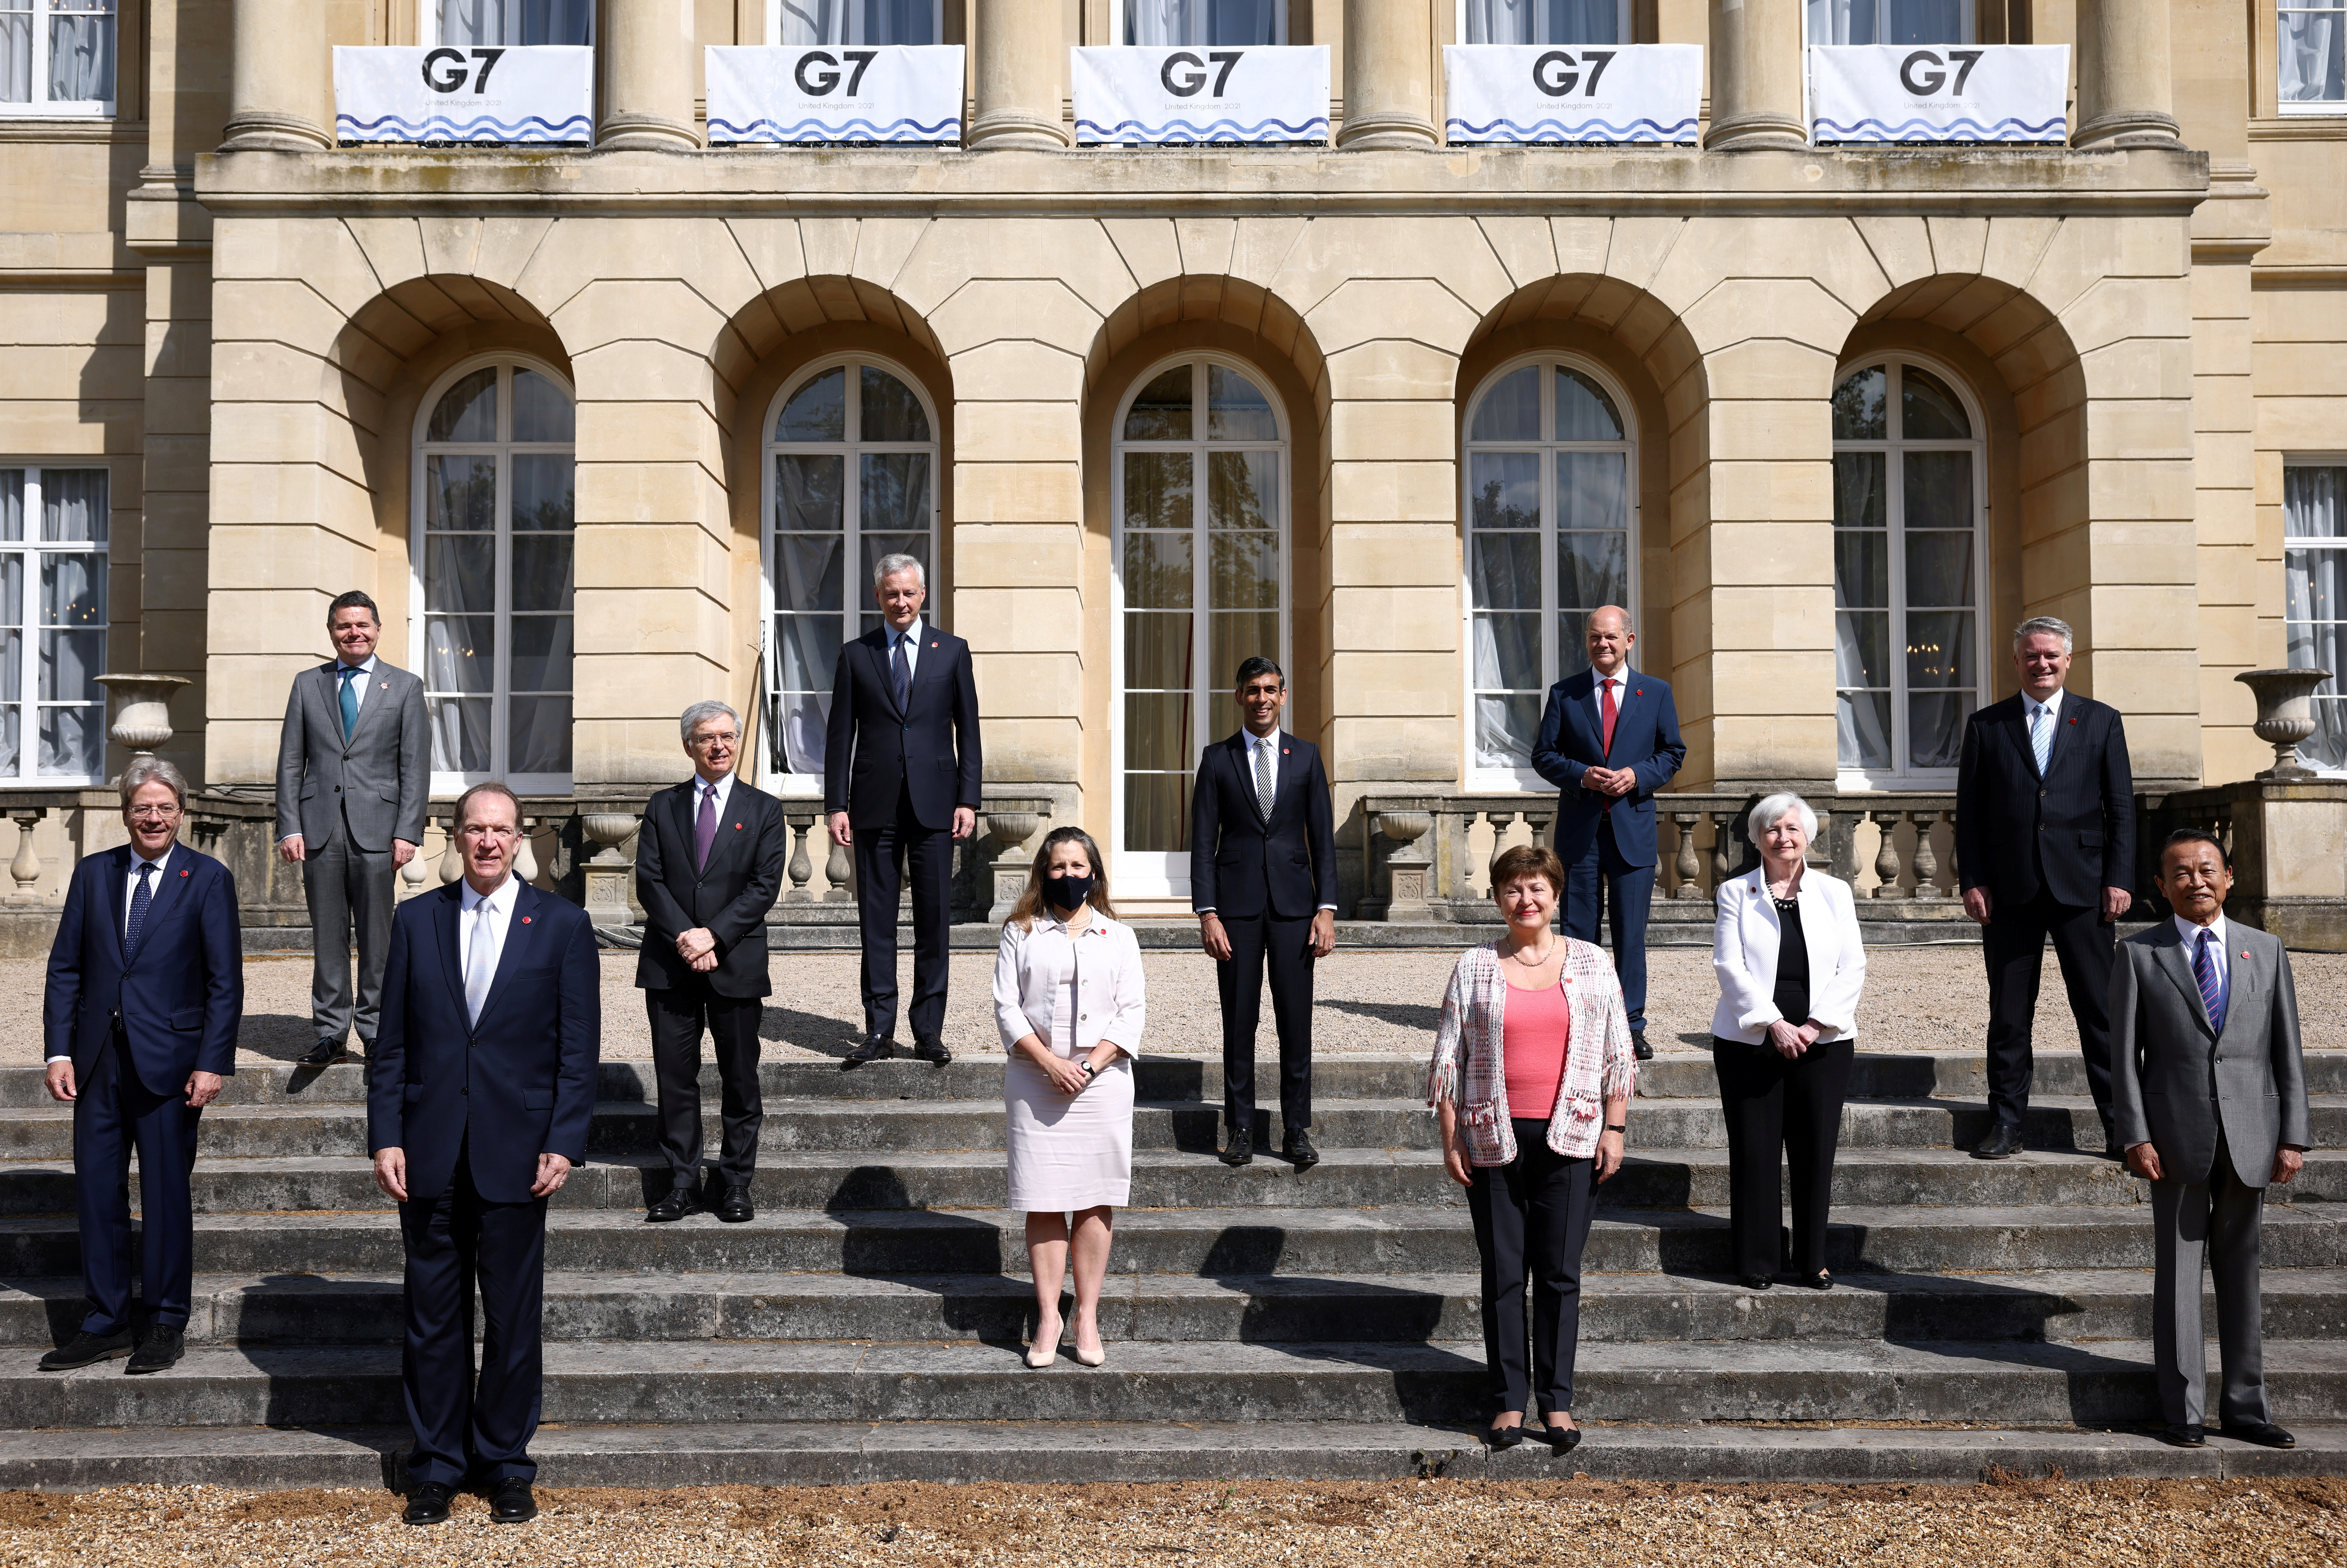 EU's Economy Commissioner Paolo Gentiloni, Eurogroup President Paschal Donohoe, World Bank President David Malpass, Italy's Finance Minister Daniele Franco, French Finance Minister Bruno Le Maire, Canada's Finance Minister Chrystia Freeland, Britain's Chancellor of the Exchequer Chancellor Rishi Sunak, Managing Director of the IMF Kristalina Georgieva, Germany's Finance Minister Olaf Scholz, U.S. Treasury Secretary Janet Yellen, Secretary-General of the Organisation for Economic Co-operation and Development (OECD) Mathias Cormann, Japan's Finance Minister Taro Aso pose for a family photo during the G7 finance ministers meeting at Lancaster House in London, Britain, June 5, 2021. REUTERS/Henry Nicholls/Pool/File Photo